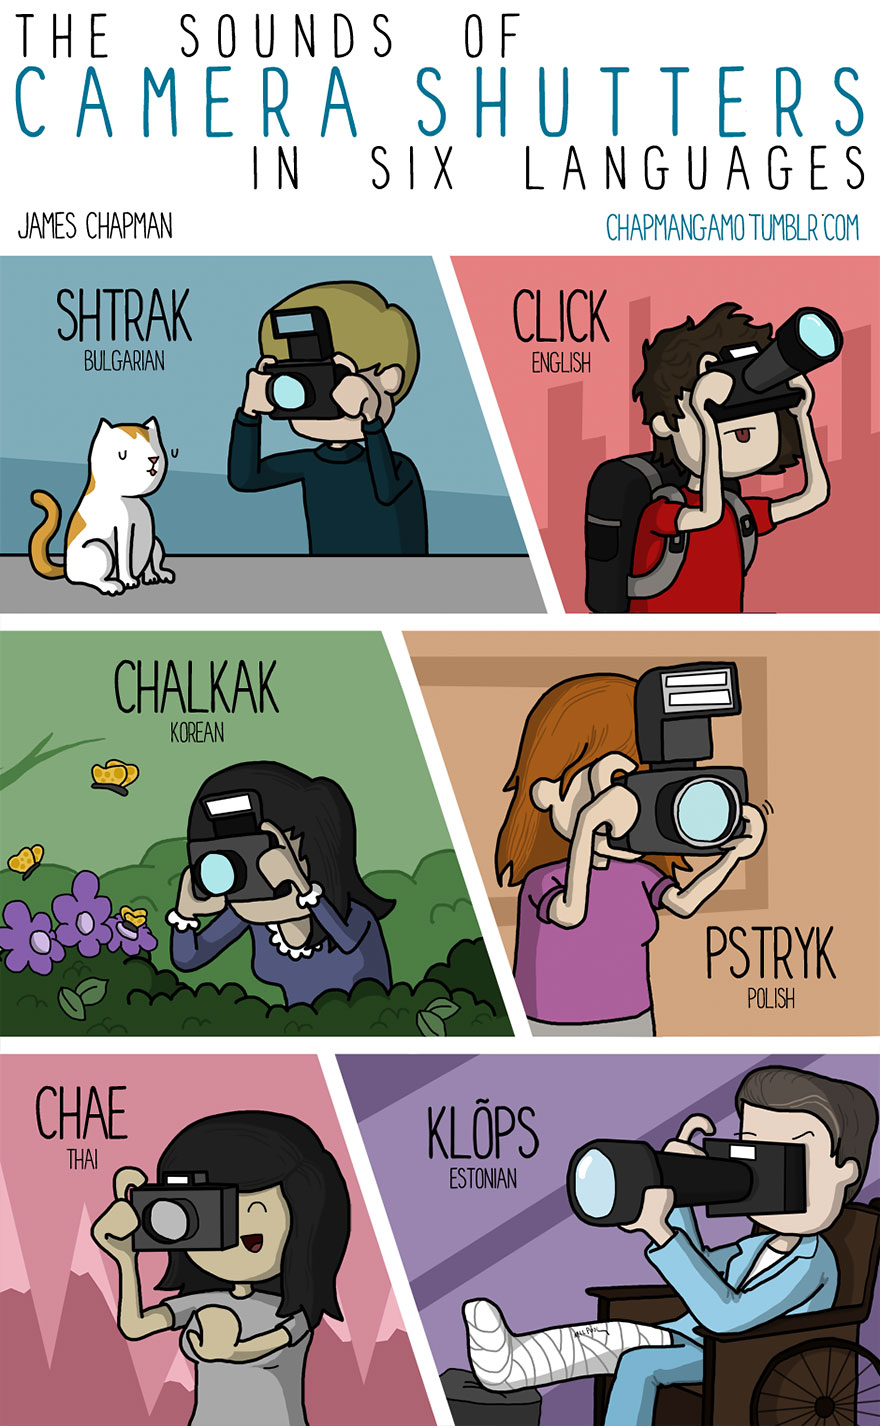 different-languages-expressions-illustrations-james-chapman-9